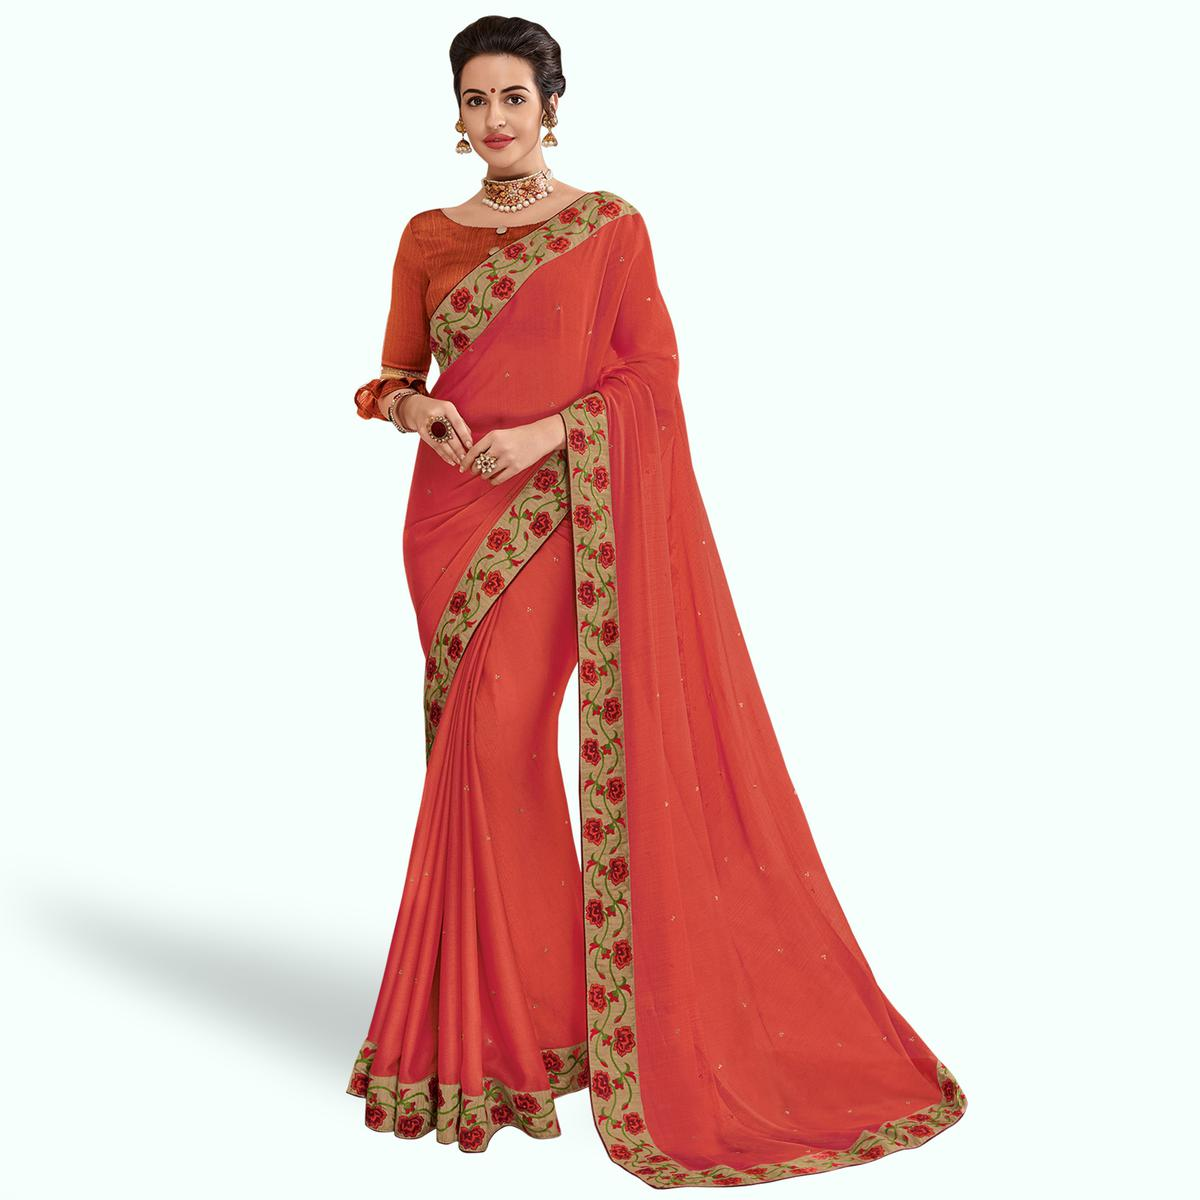 Engrossing Coral Red Colored Partywear Embroidered Georgette Saree